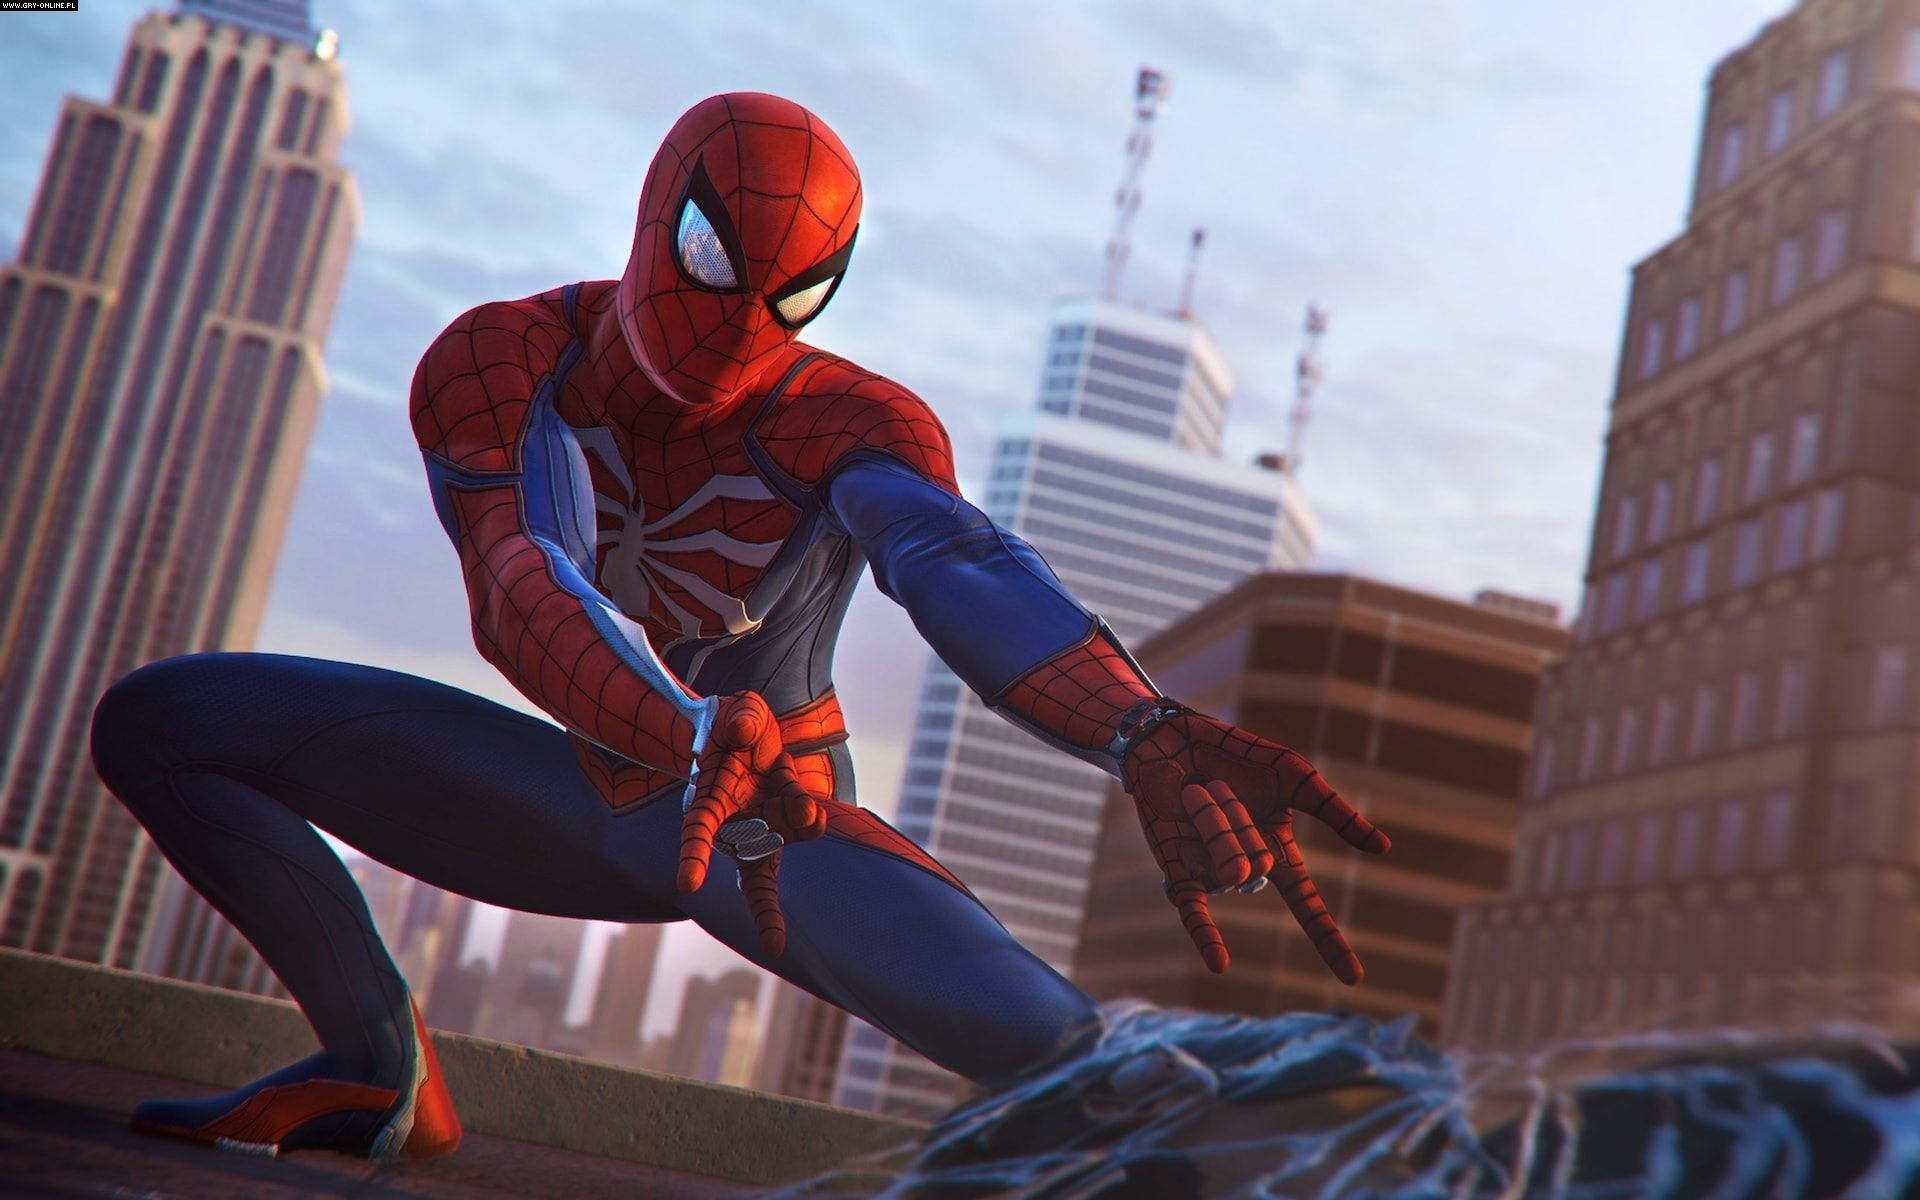 Spider-Man PS4 Games Image 25/47, Insomniac Games, Sony Interactive Entertainment